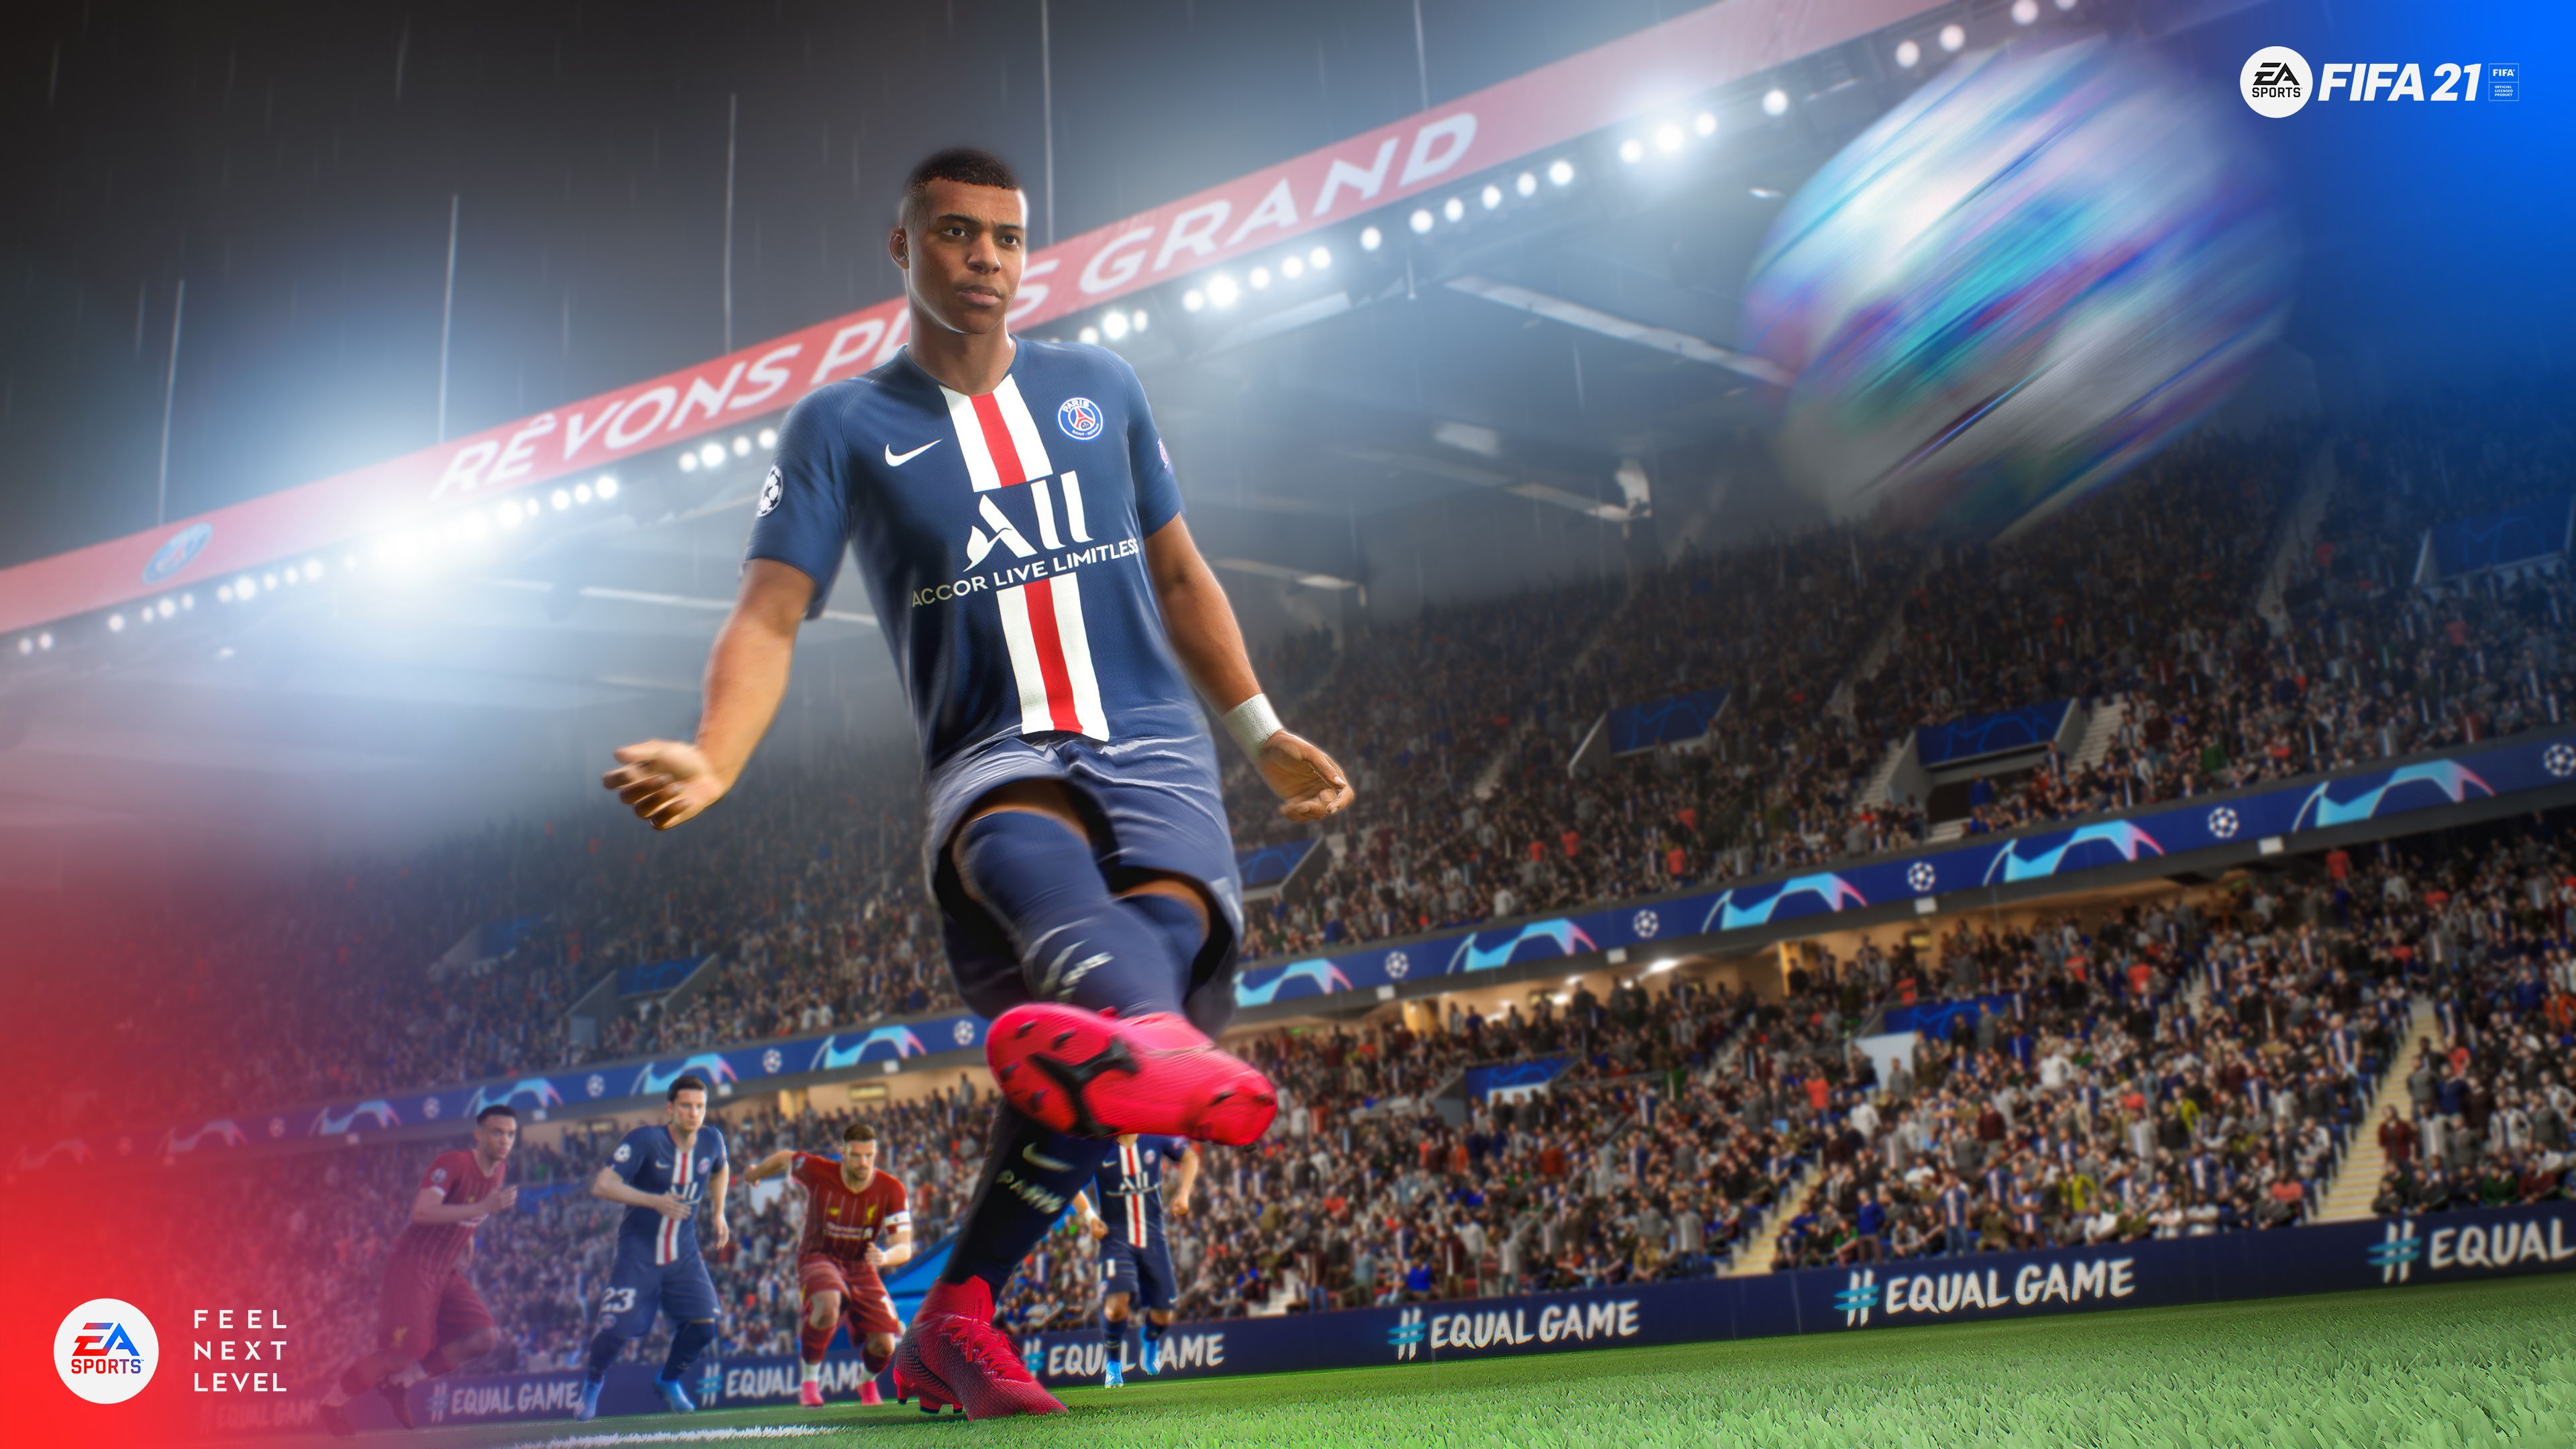 FIFA 21 Wallpapers   Top FIFA 21 Backgrounds   WallpaperAccess 3840x2160